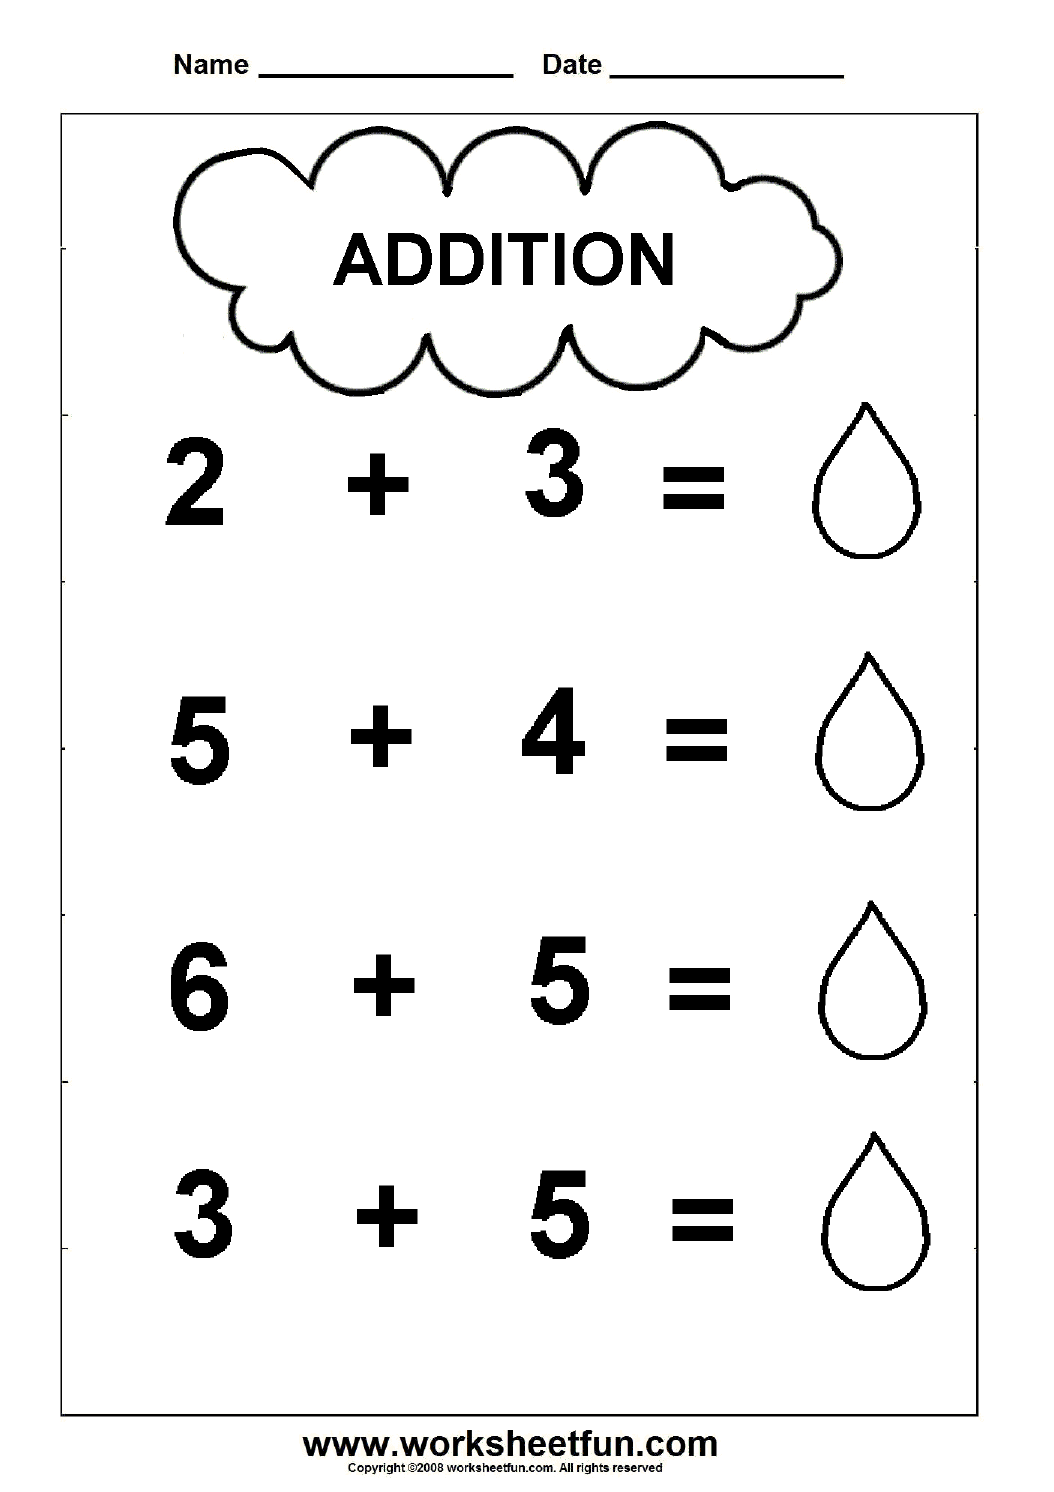 Worksheet Easy Kindergarten Worksheets addition 2 worksheets kindergarten pinterest worksheets